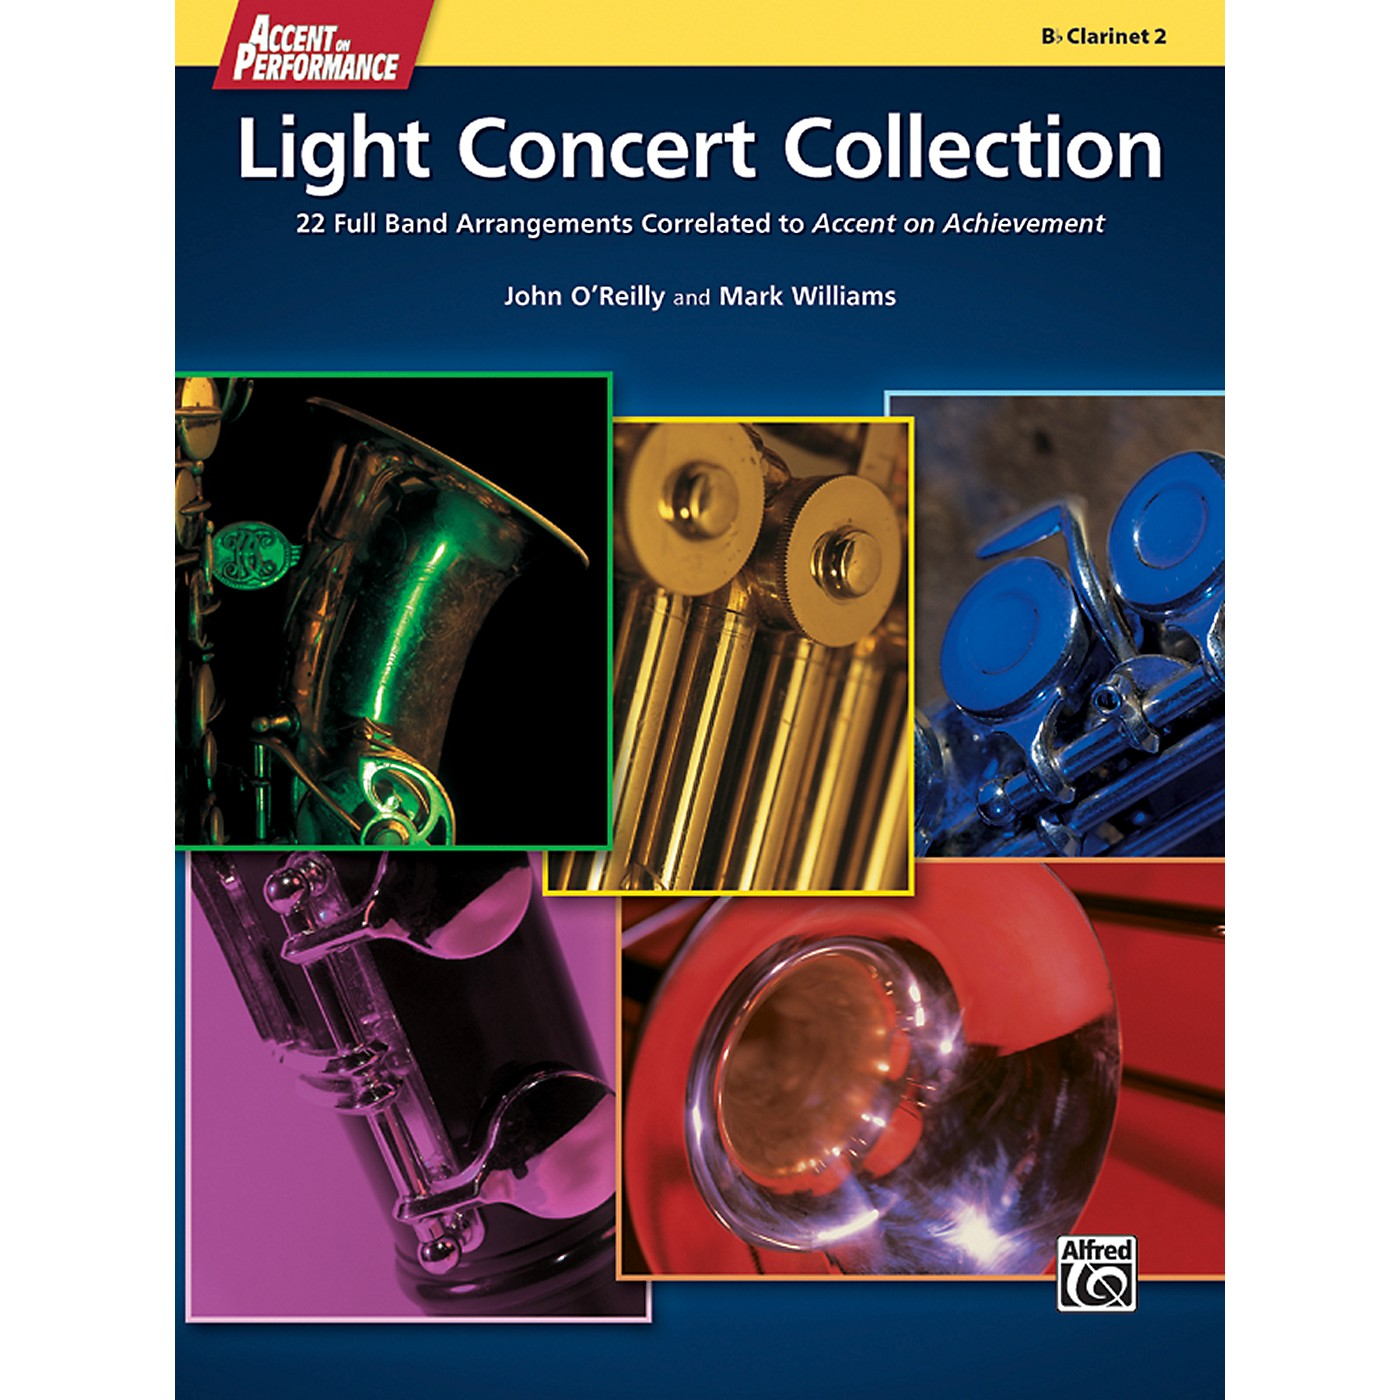 Alfred Accent on Performance Light Concert Collection Clarinet 2 Book thumbnail